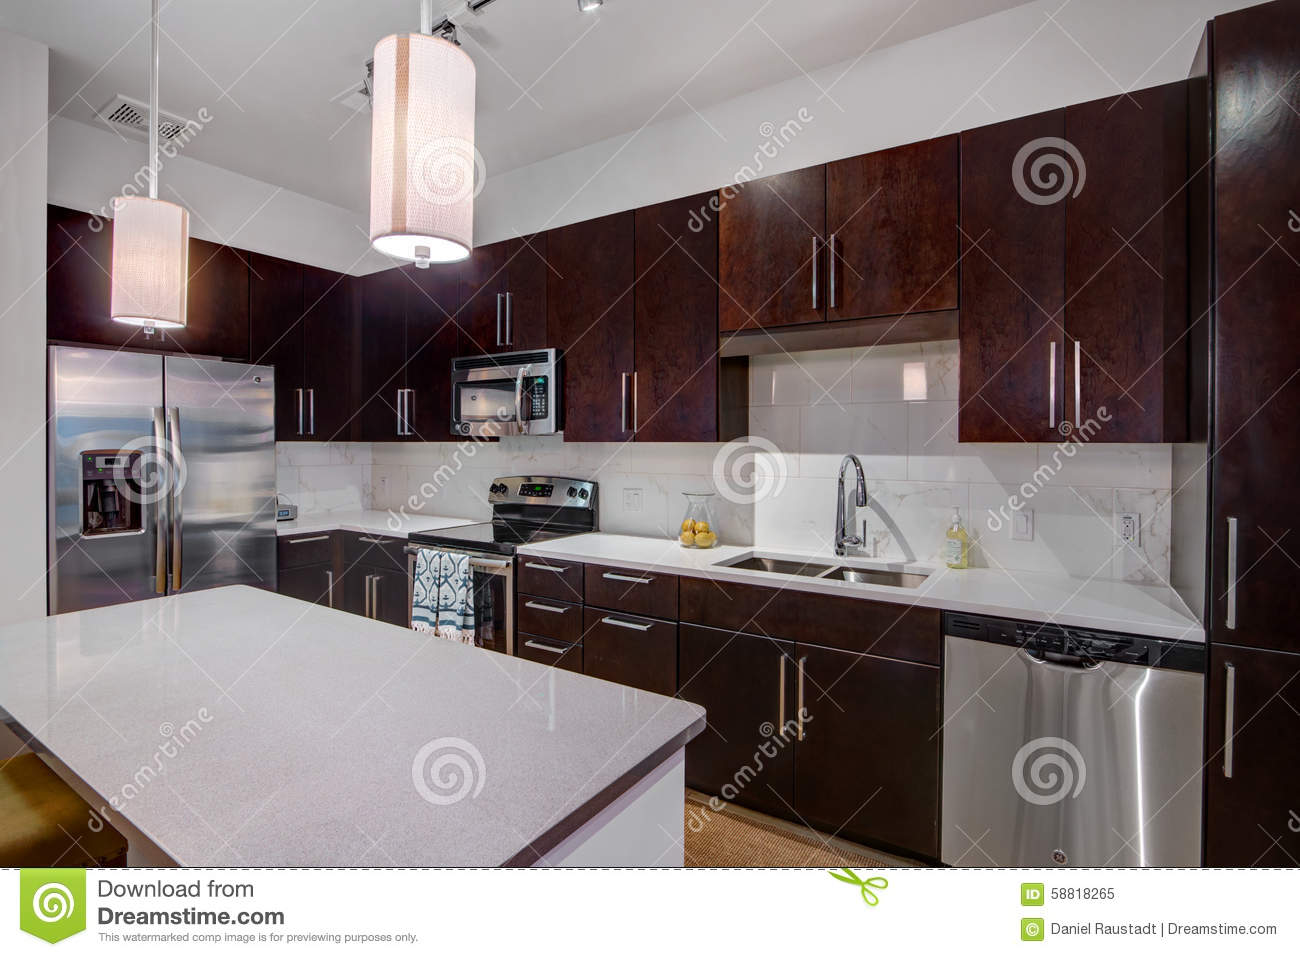 Cuisine moderne d 39 appartement photo stock image 58818265 for Couleur appartement moderne